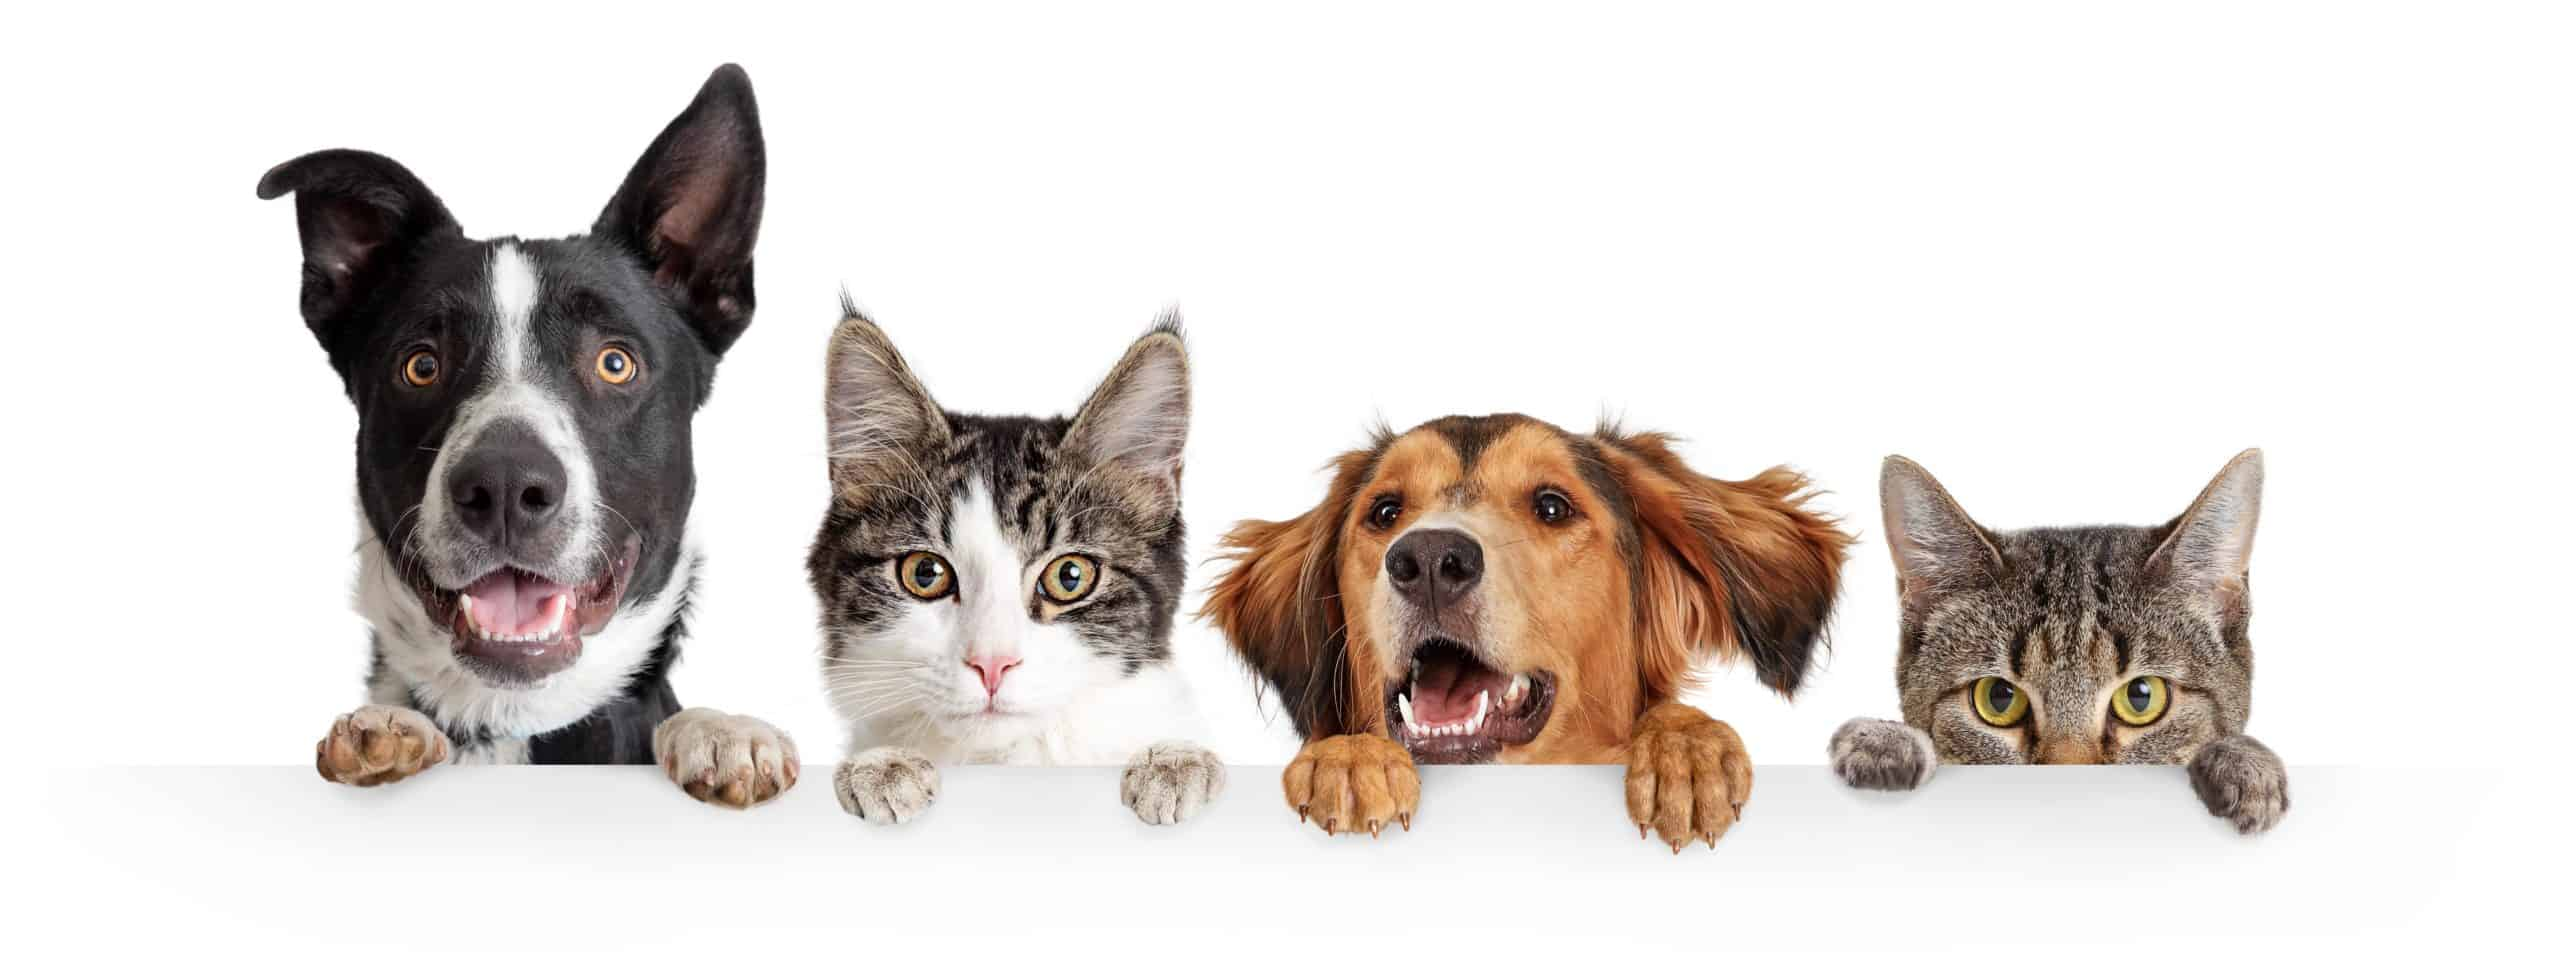 Collection of dogs and cats on a white background. Cats vs. dogs: Differences include size, food, communication styles, memory, potty breaks, and exercise needs.